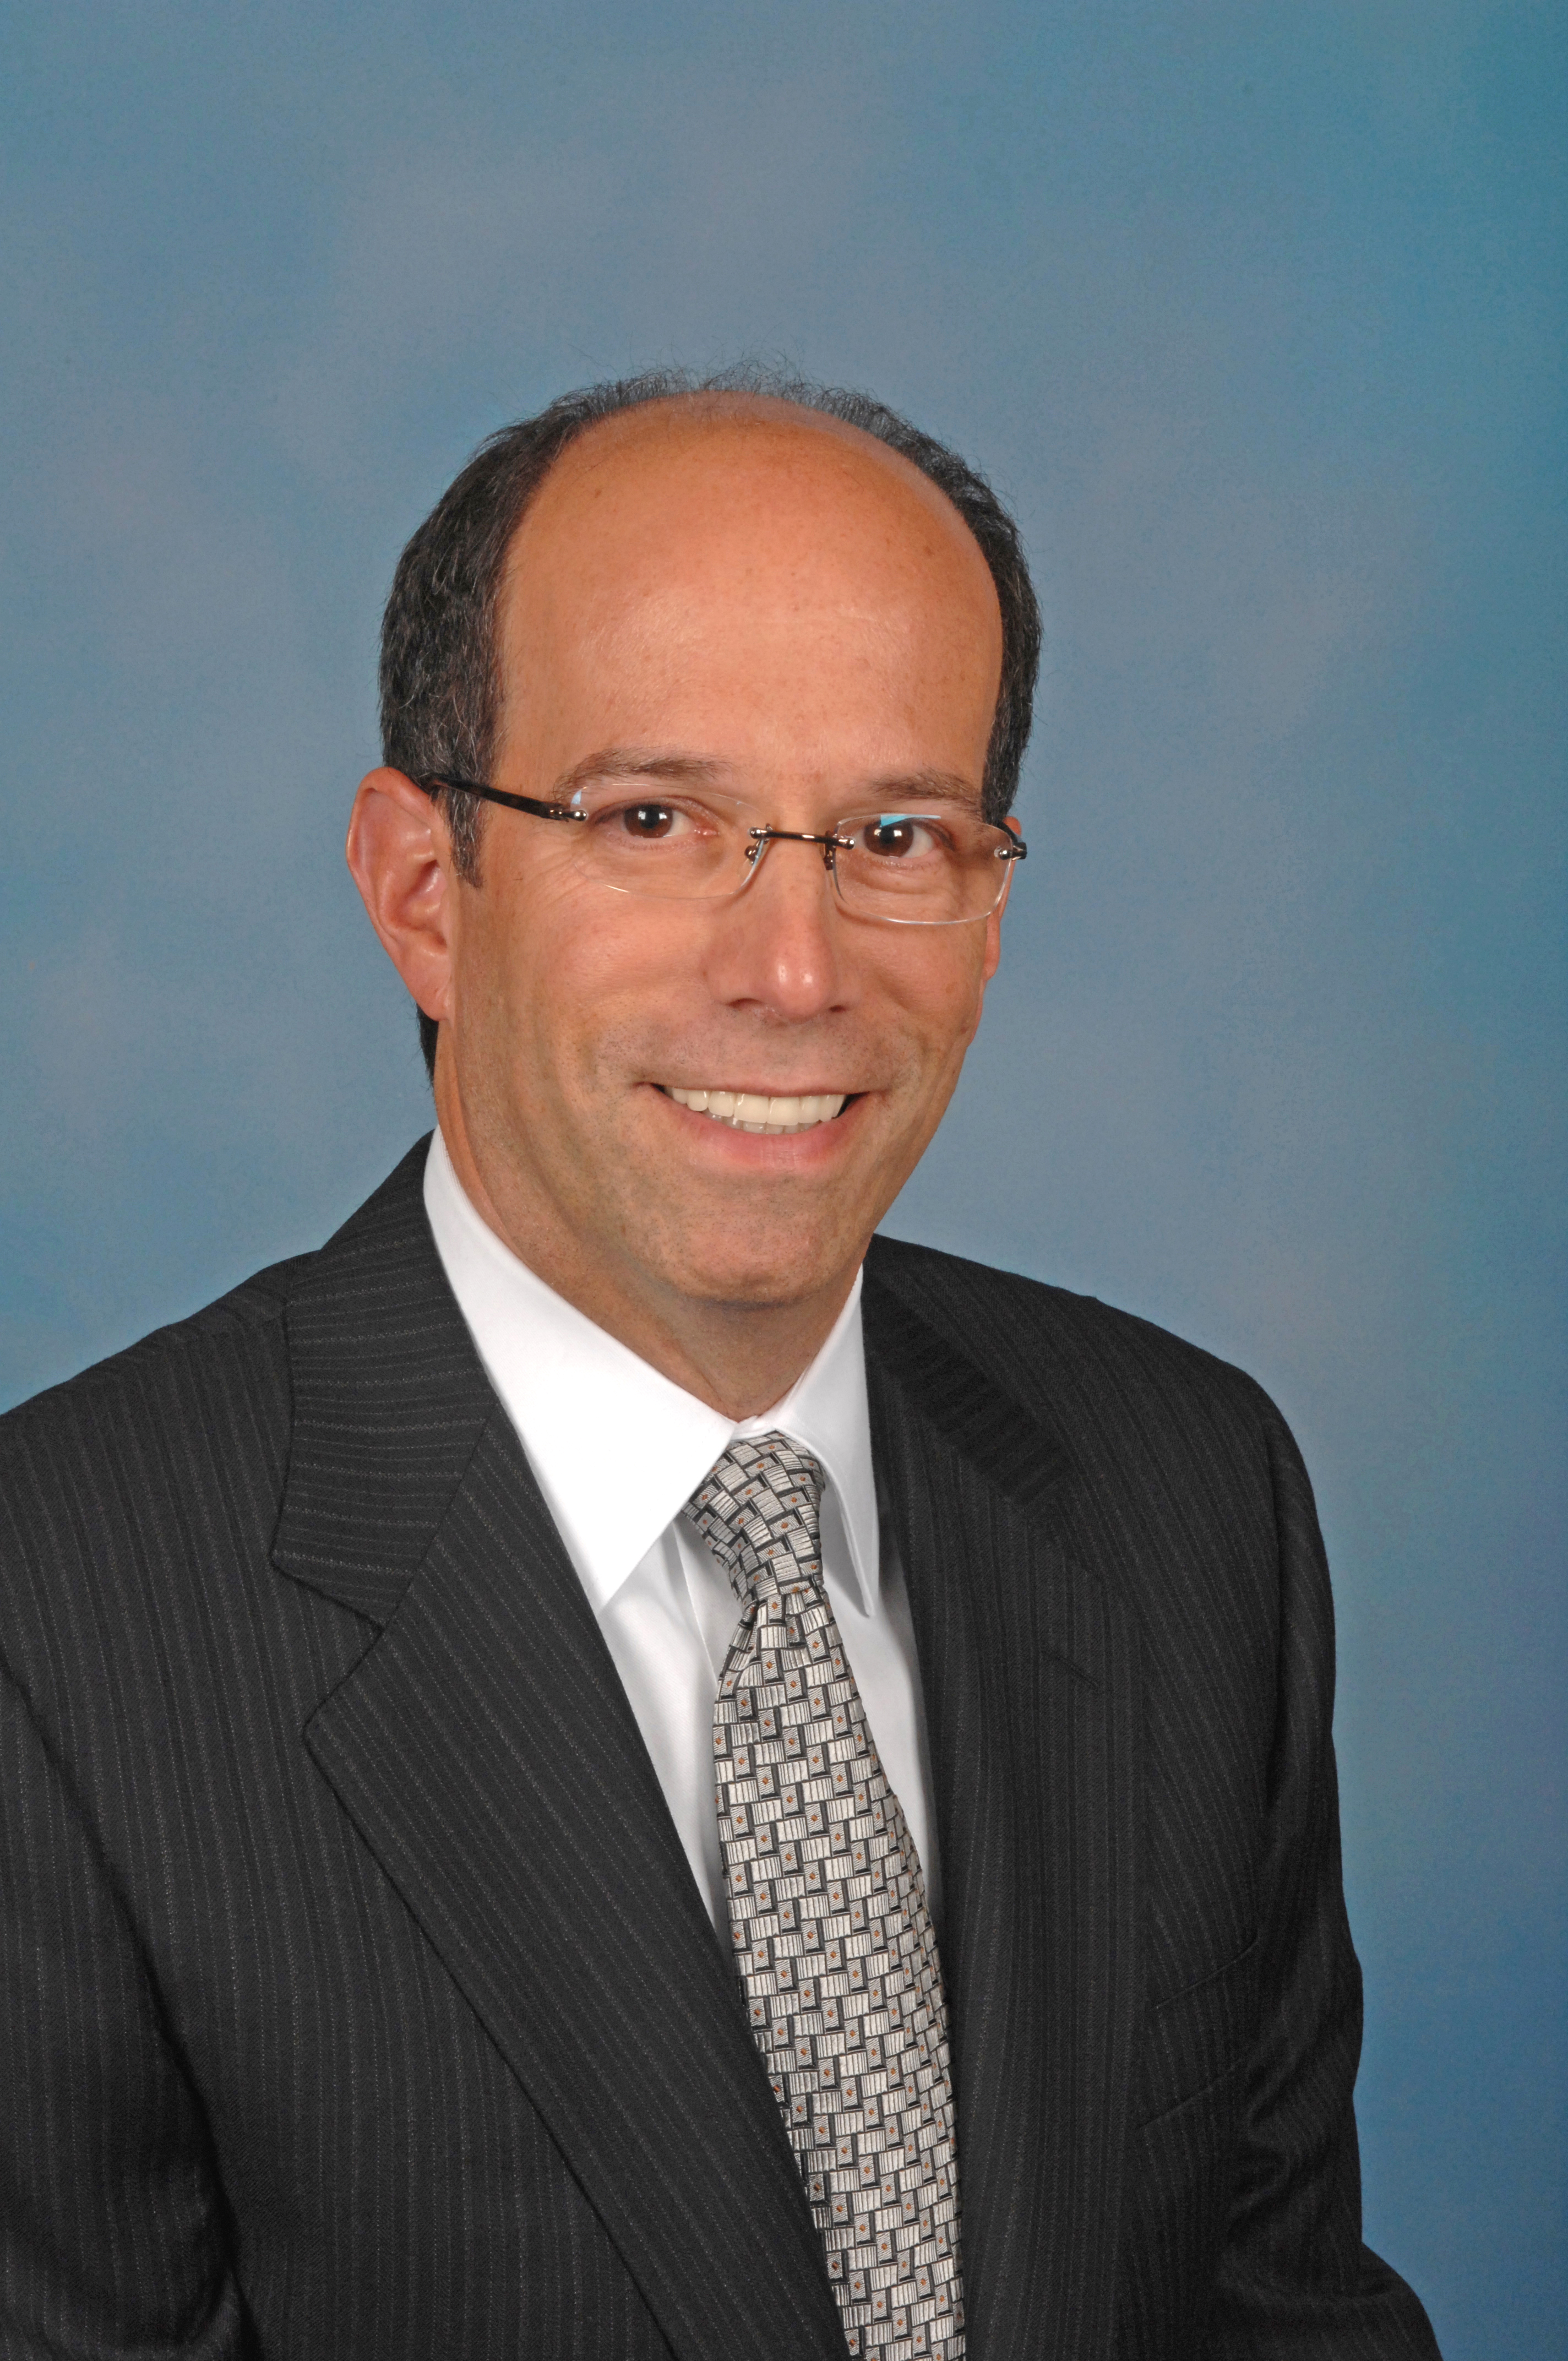 Barry R. Morgenstern, MD